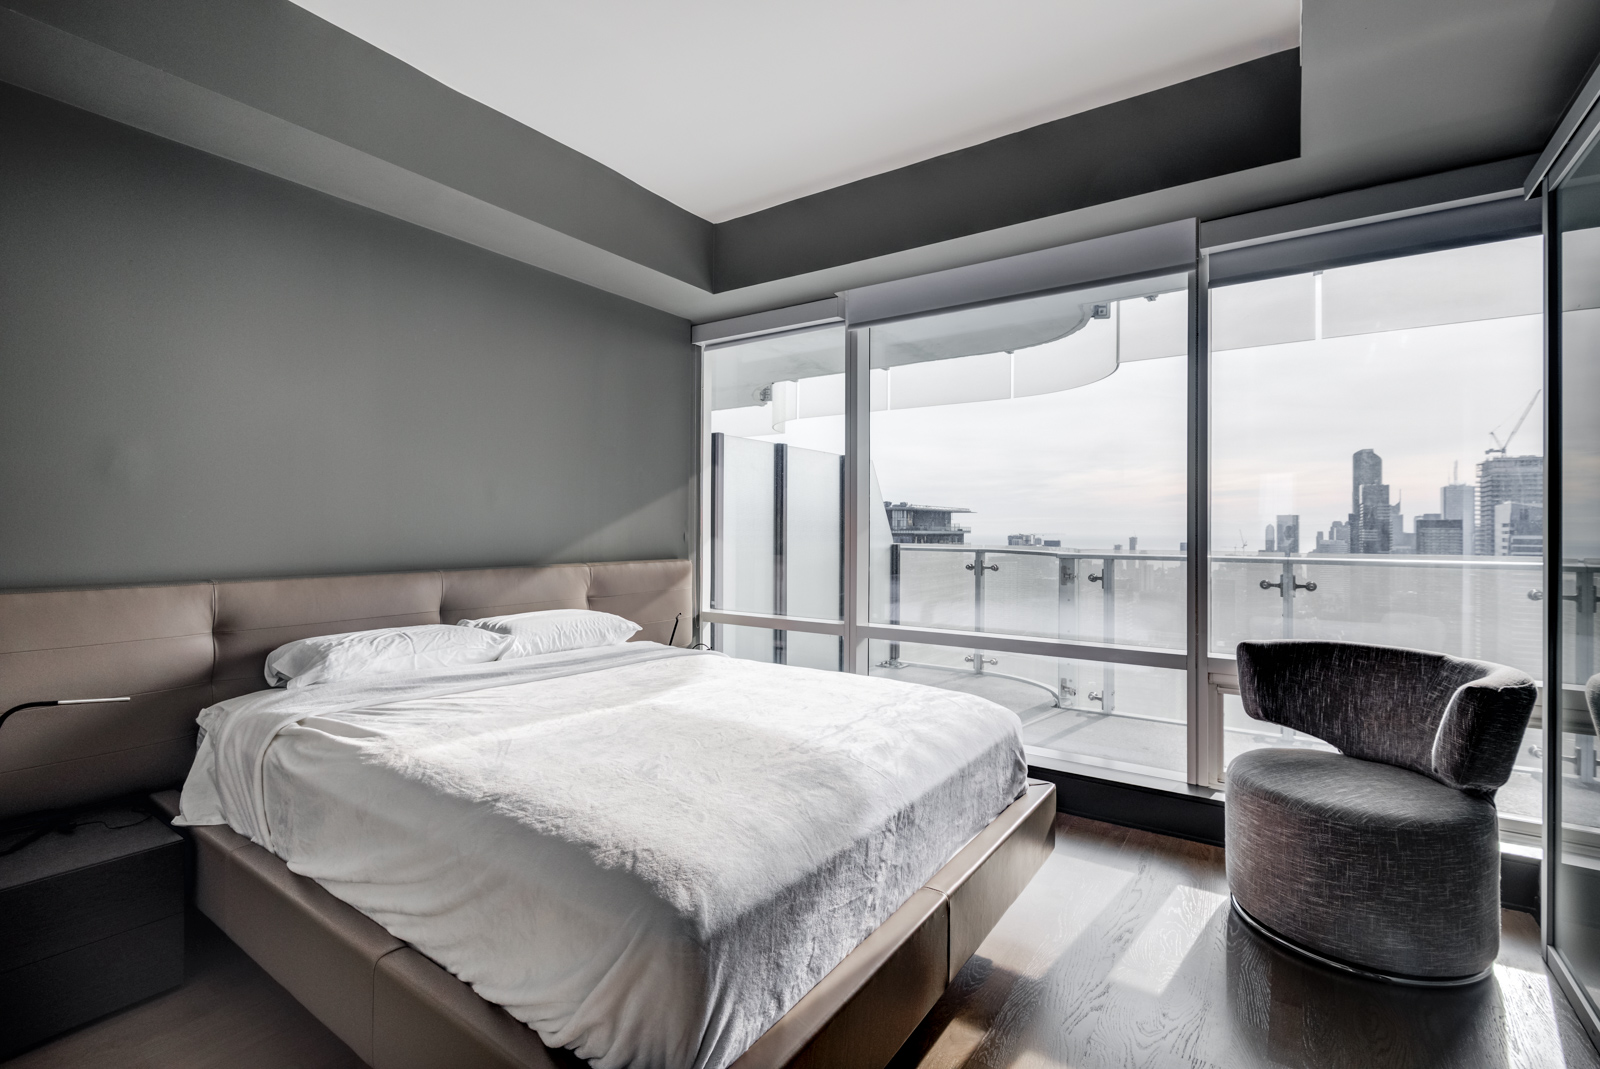 Huge master bedroom and bed with white covers; dark walls and large windows showing Toronto from One Bloor Condos.